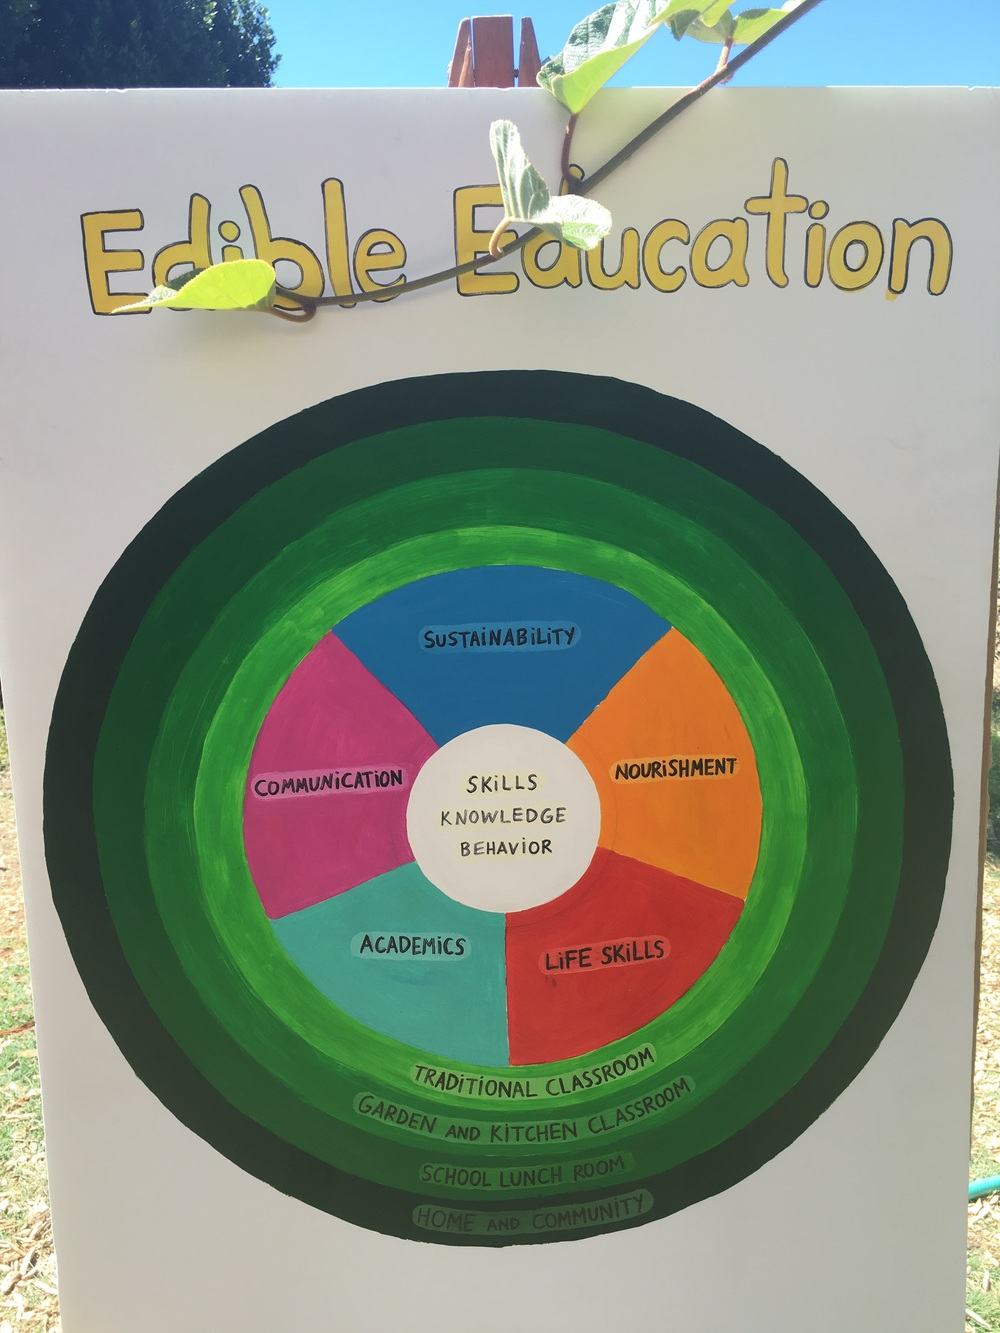 ESY's Practices for Engaging Students in Edible Education.